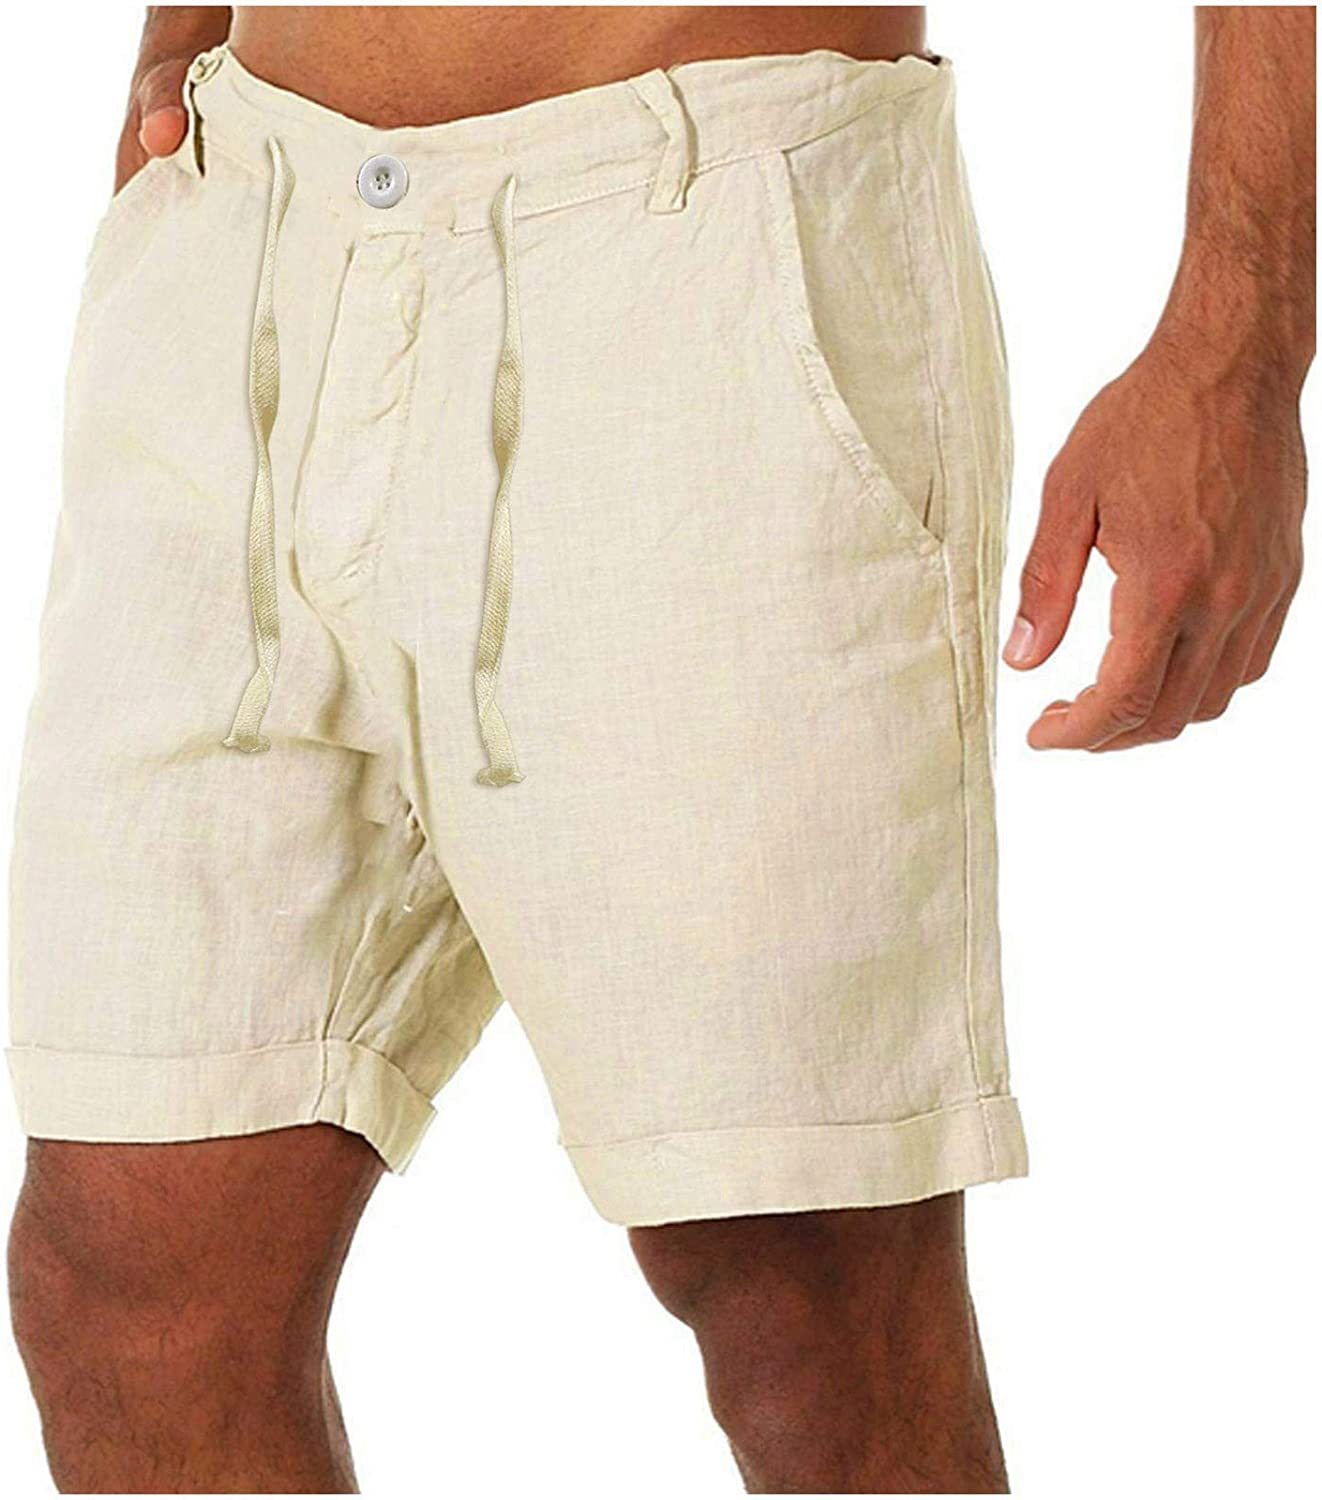 Burband Mens Casual Linen Shorts Summer Beach Shorts 11 Inch Inseam Loose Fit Elastic Waist Pants with Drawstring and Button